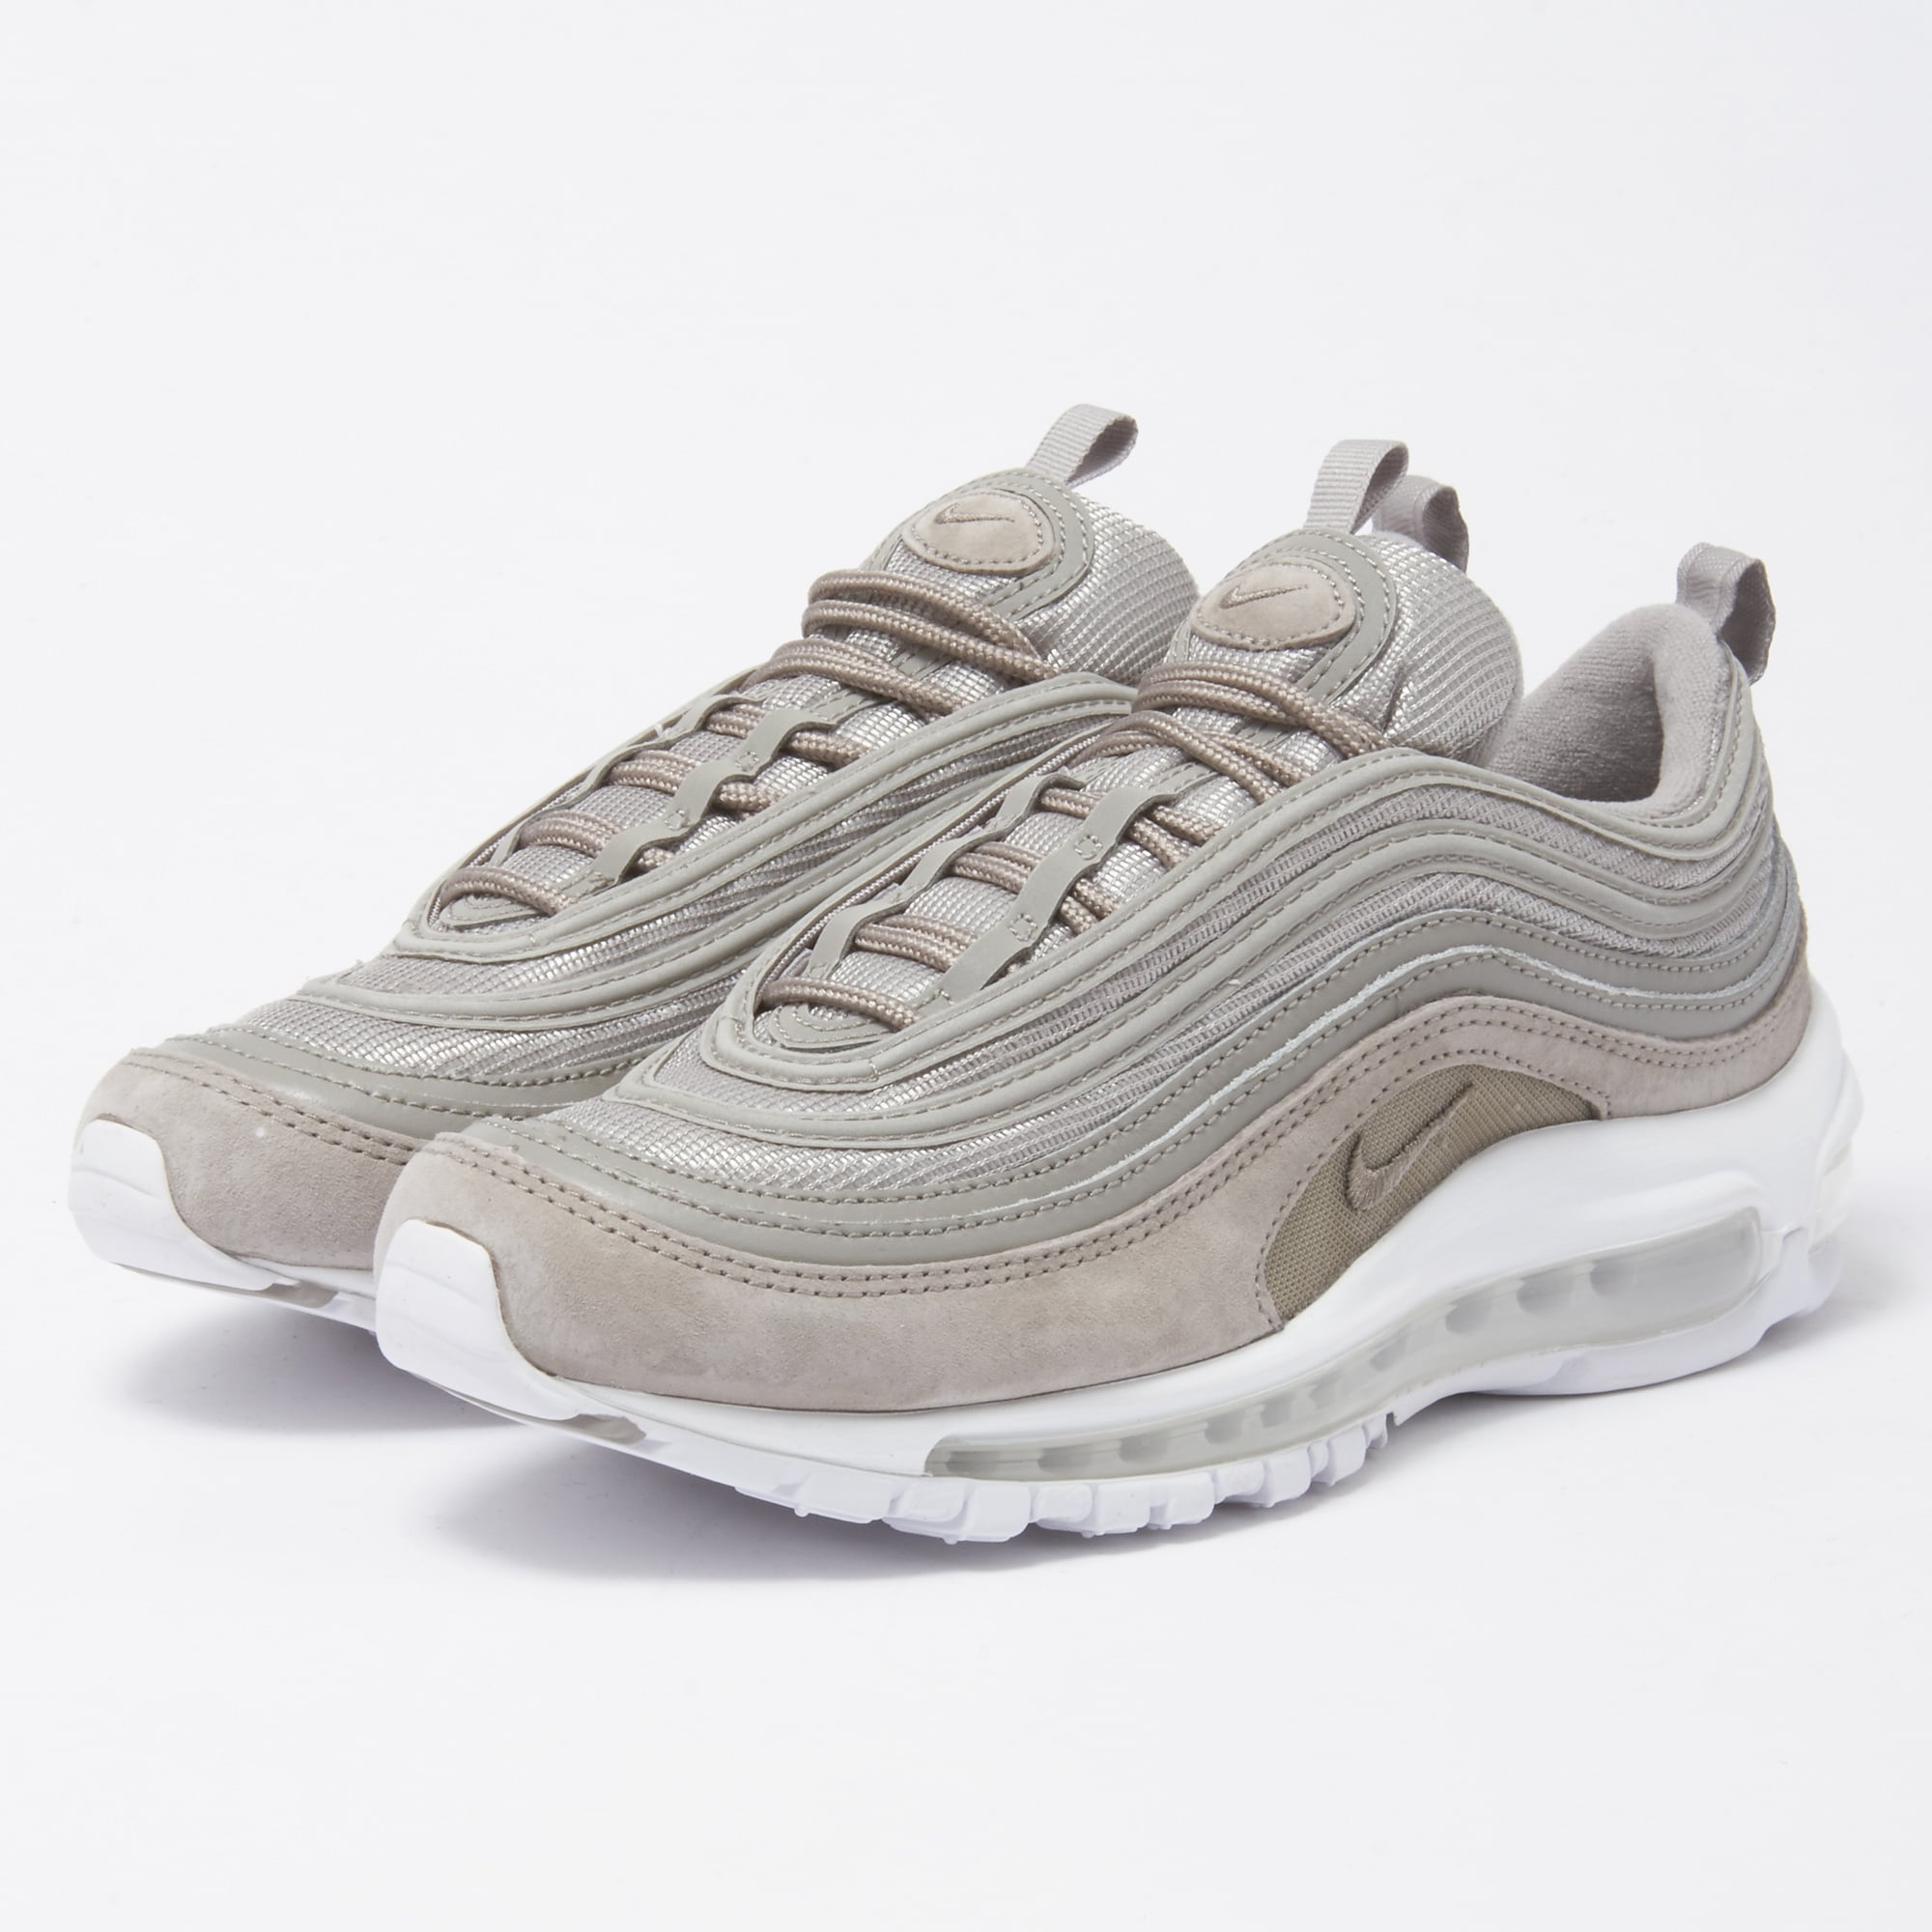 bbb7f0b87a nike air max 97 cobblestone and white nz|Free delivery!